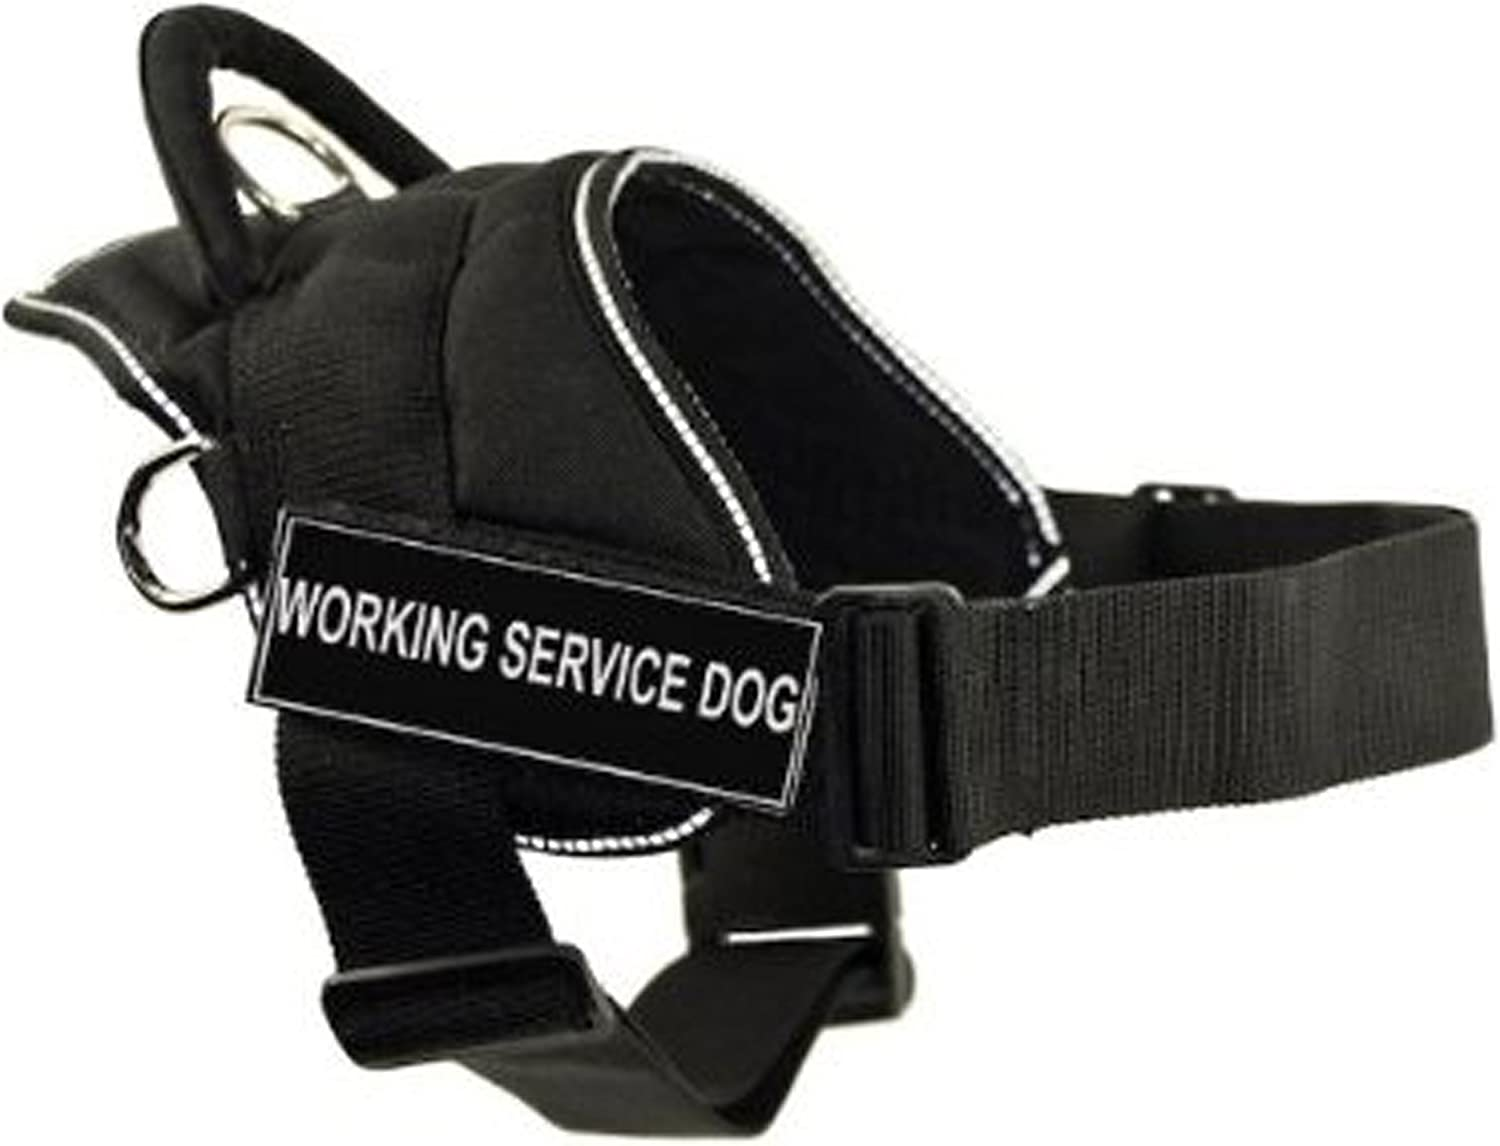 Dean & Tyler DT Fun Works Harness, Working Service Dog, Black With Reflective Trim, XSmall  Fits Girth Size  20Inch to 23Inch